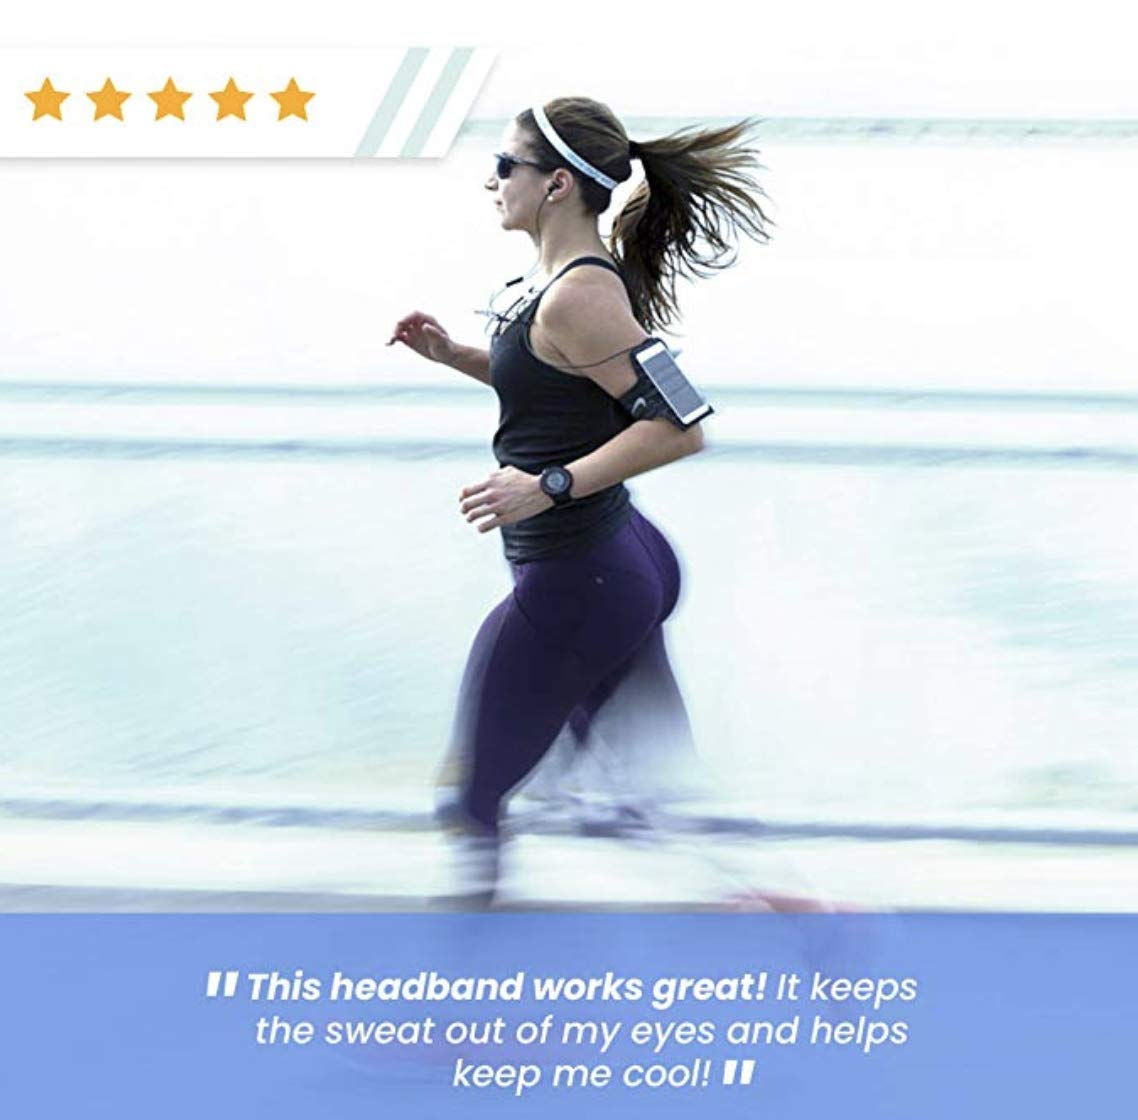 Cooling Headbands for Women | Moisture Wicking Womens Sweatband & Sports Headband | Stay Cool During Workouts Cycling Cardio Running Yoga | Headwear for Under Helmets & Hats (Sailer Jane) by Bani Bands (Image #5)